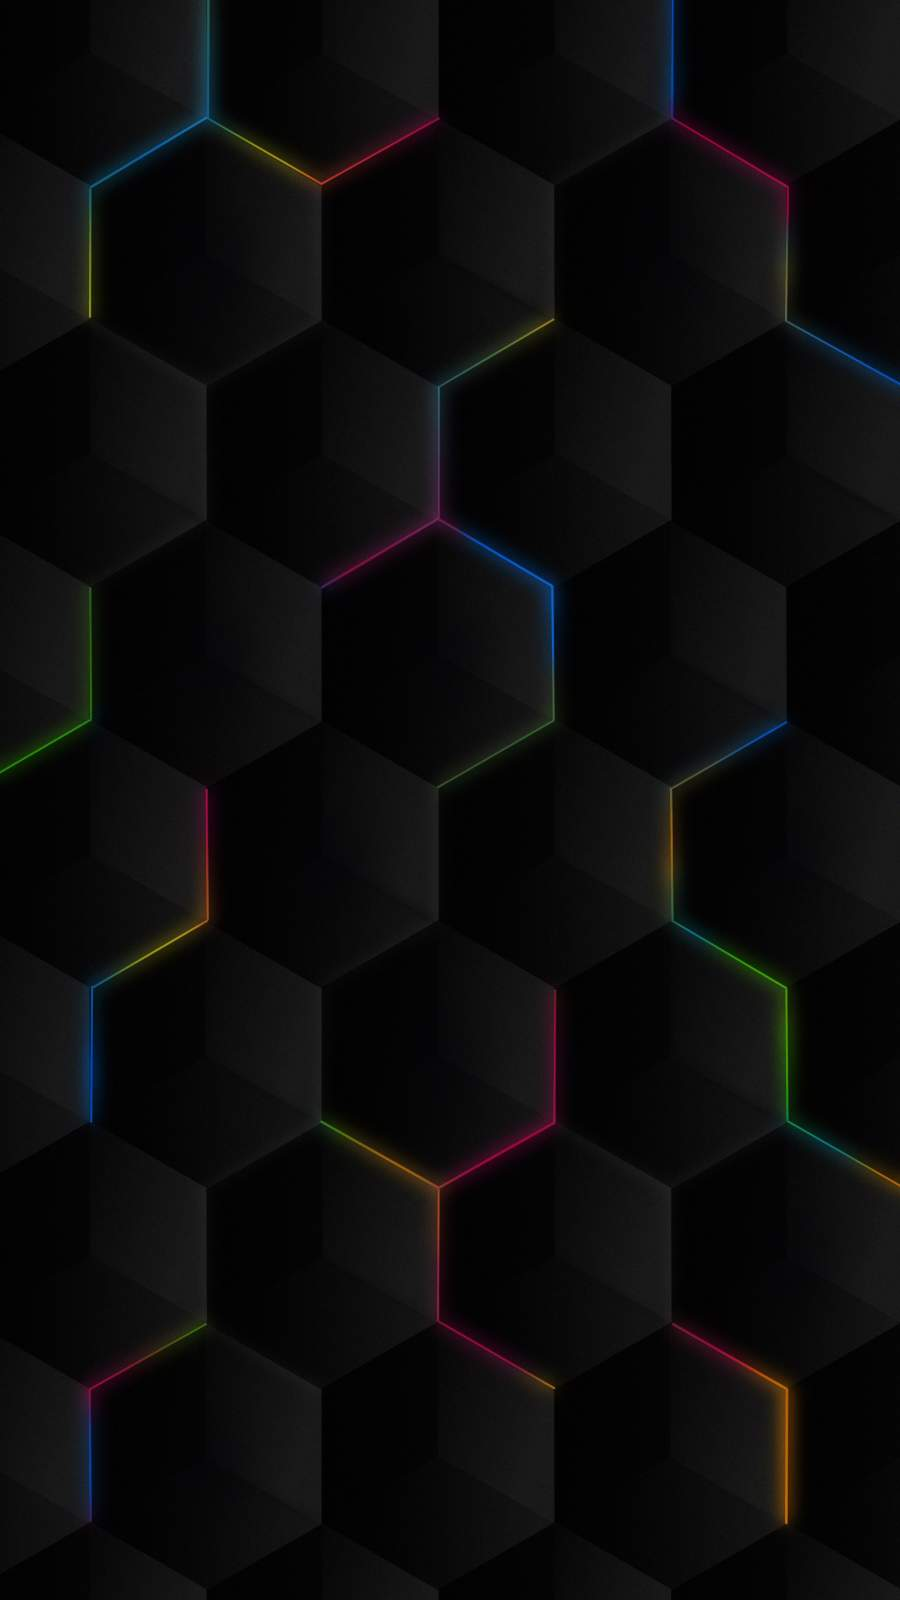 Neon Hexagon RGB Light